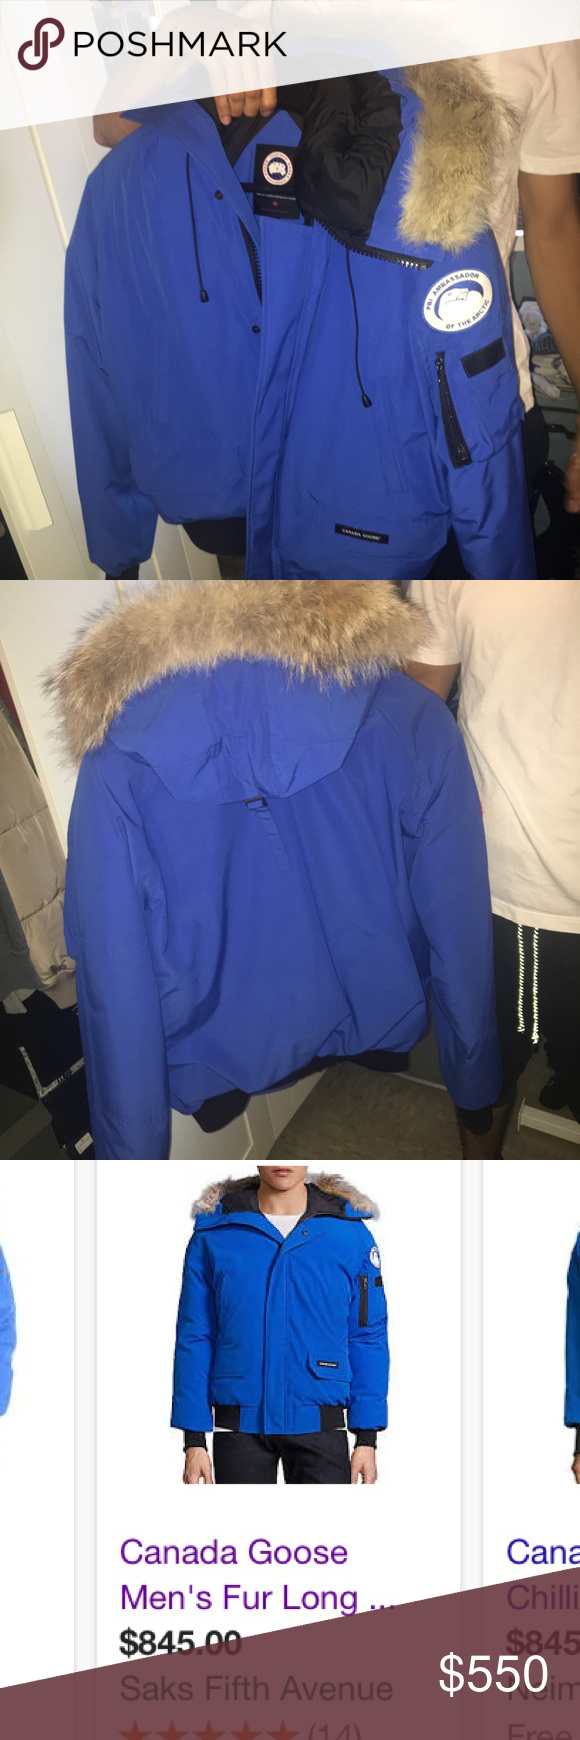 canada goose coat for skiing